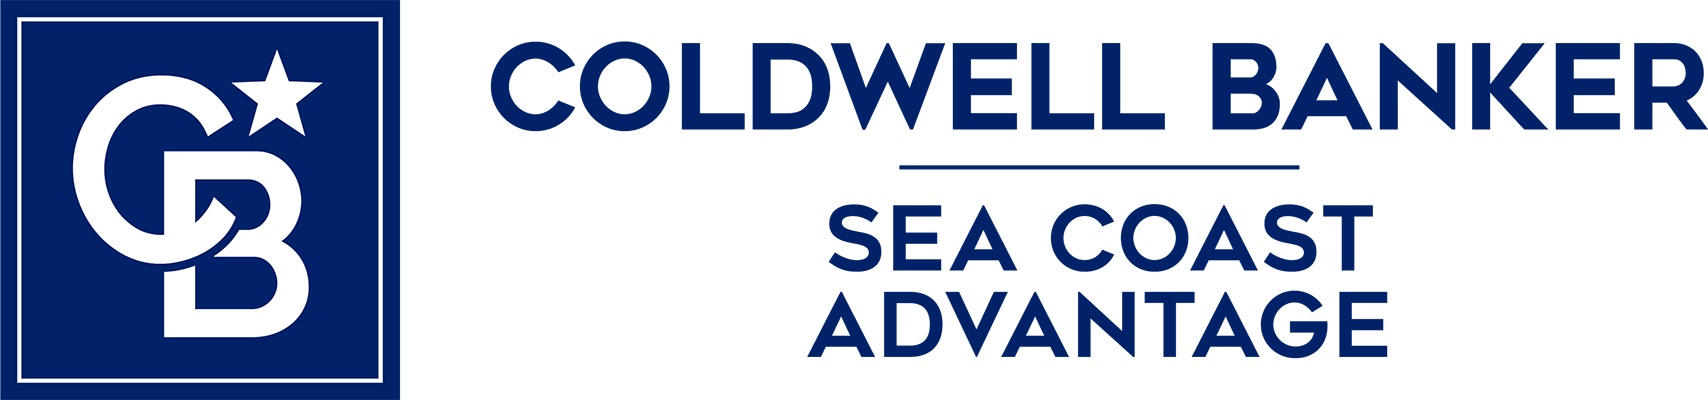 Tom Guzulaitis - Coldwell Banker Sea Coast Advantage Realty